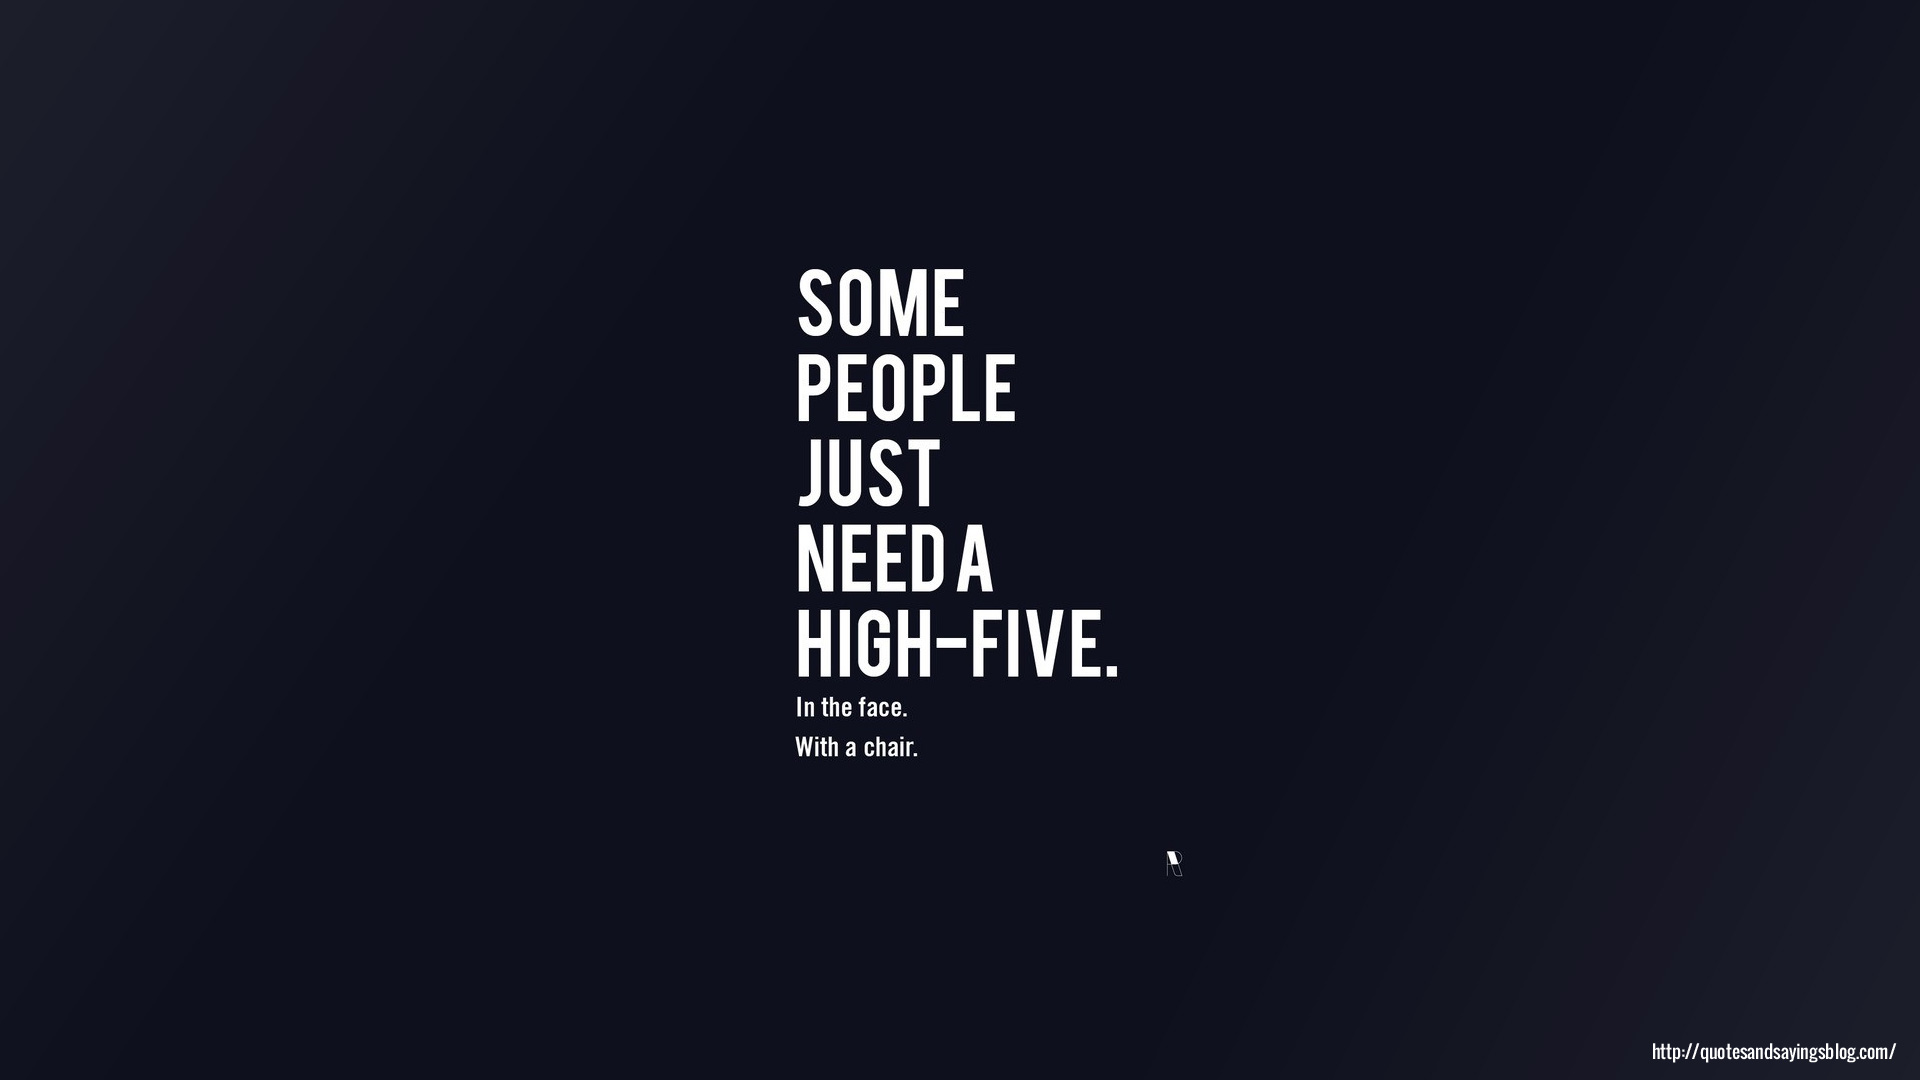 Hd wallpaper quotes for mobile - Iphone Funny Quote Wallpapers Image Quotes At Buzzquotes Com